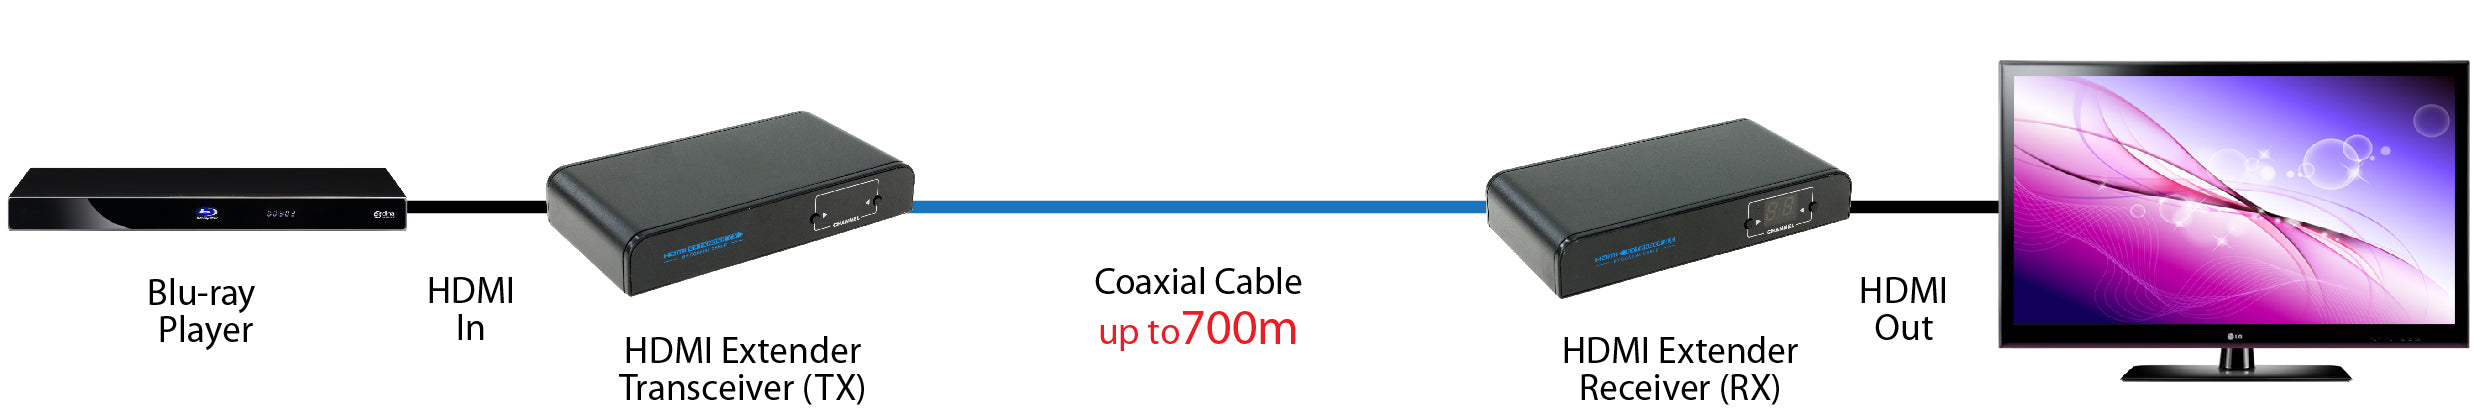 HDMI Extender Over Coaxial Cable (Receiver only for HDMI-COX-700M), HDMI General Connection